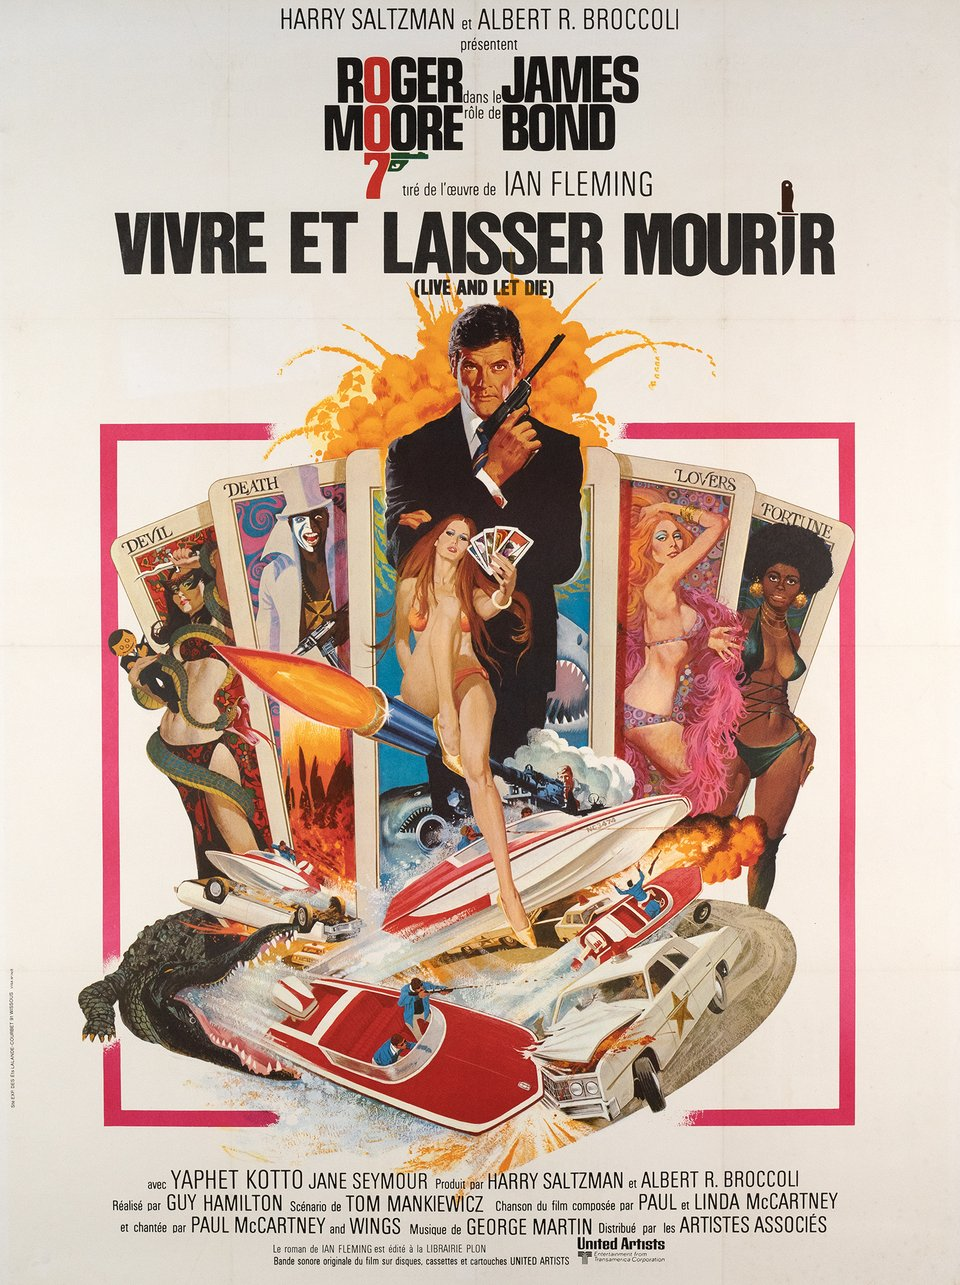 James Bond 007, Vivre et laisser mourir – Vintage poster – Robert MCGINNIS – 1973